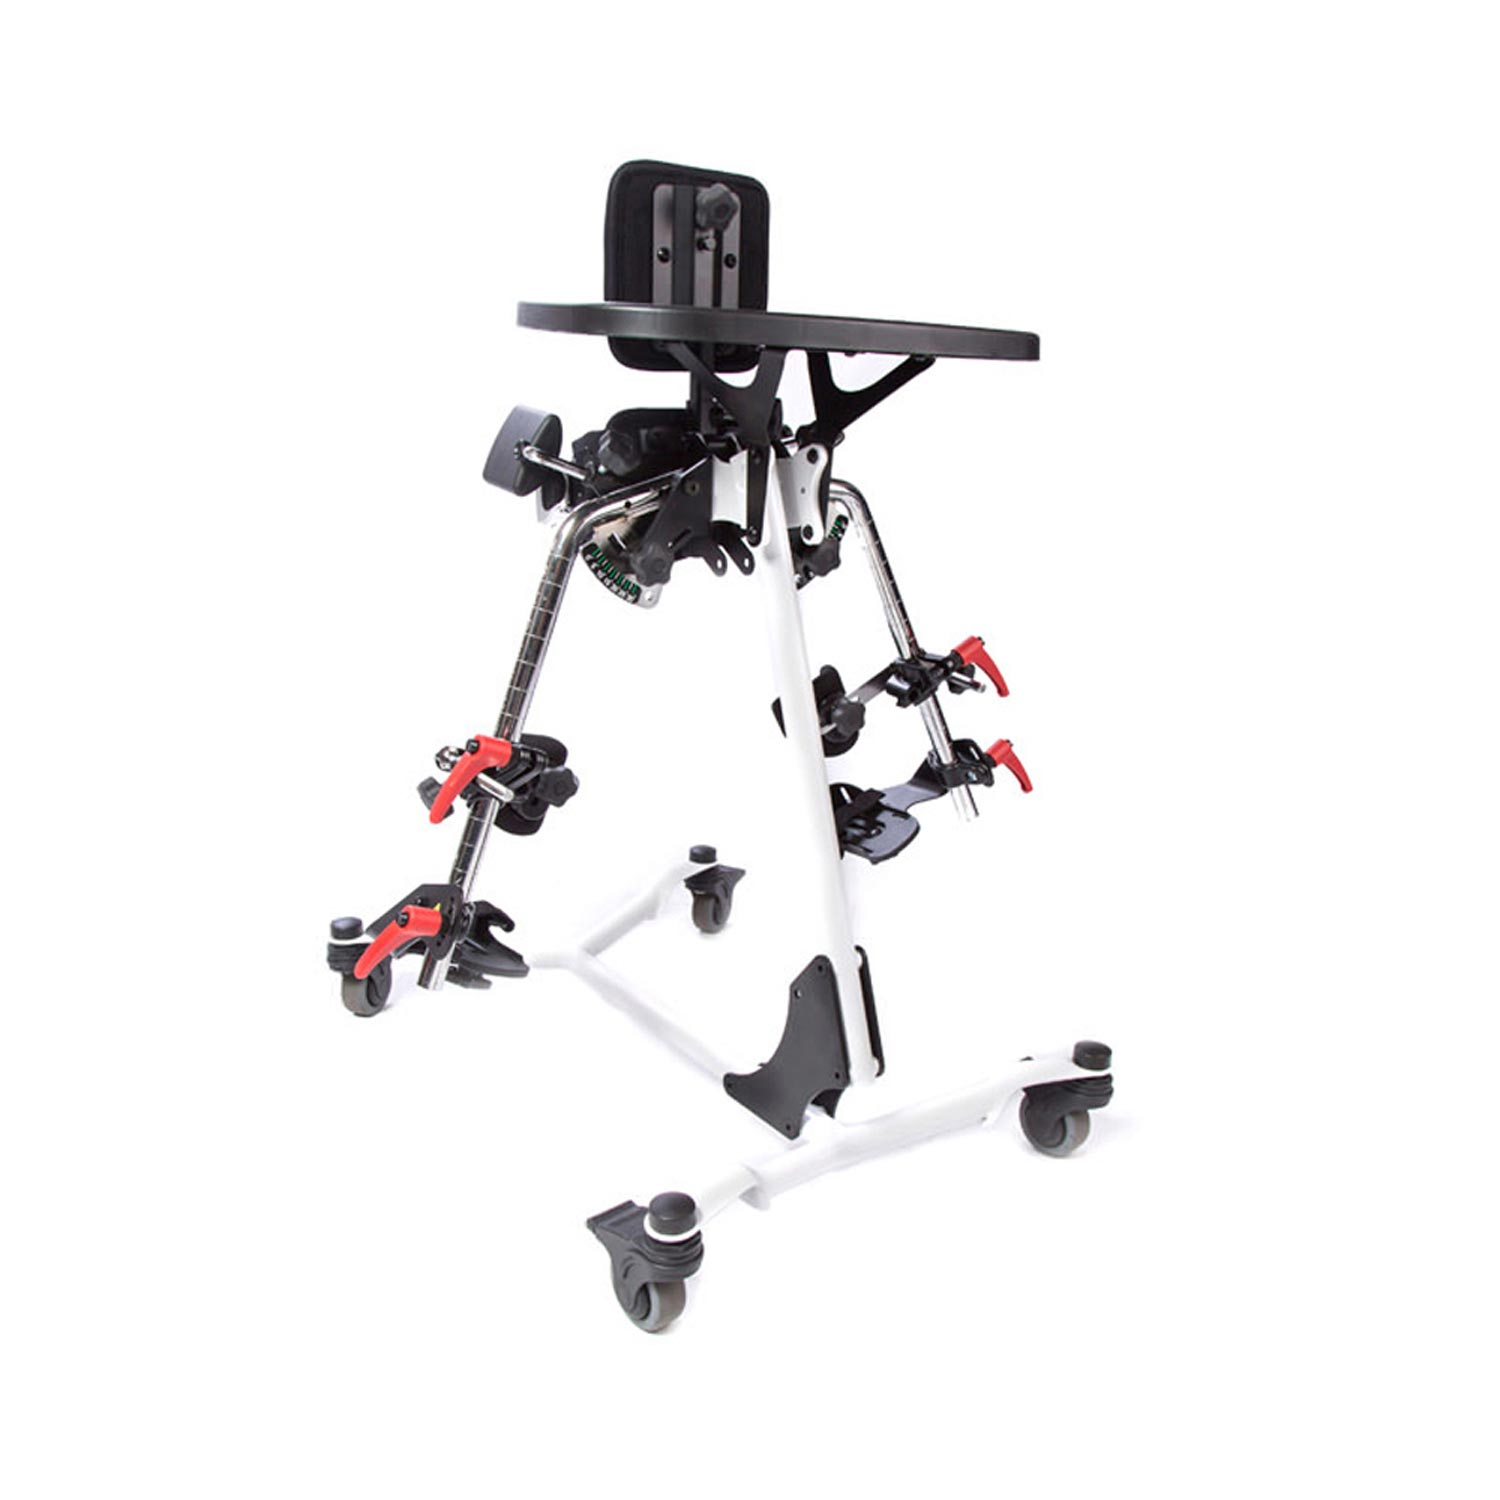 Zing vertical stander - Mast with leg abduction